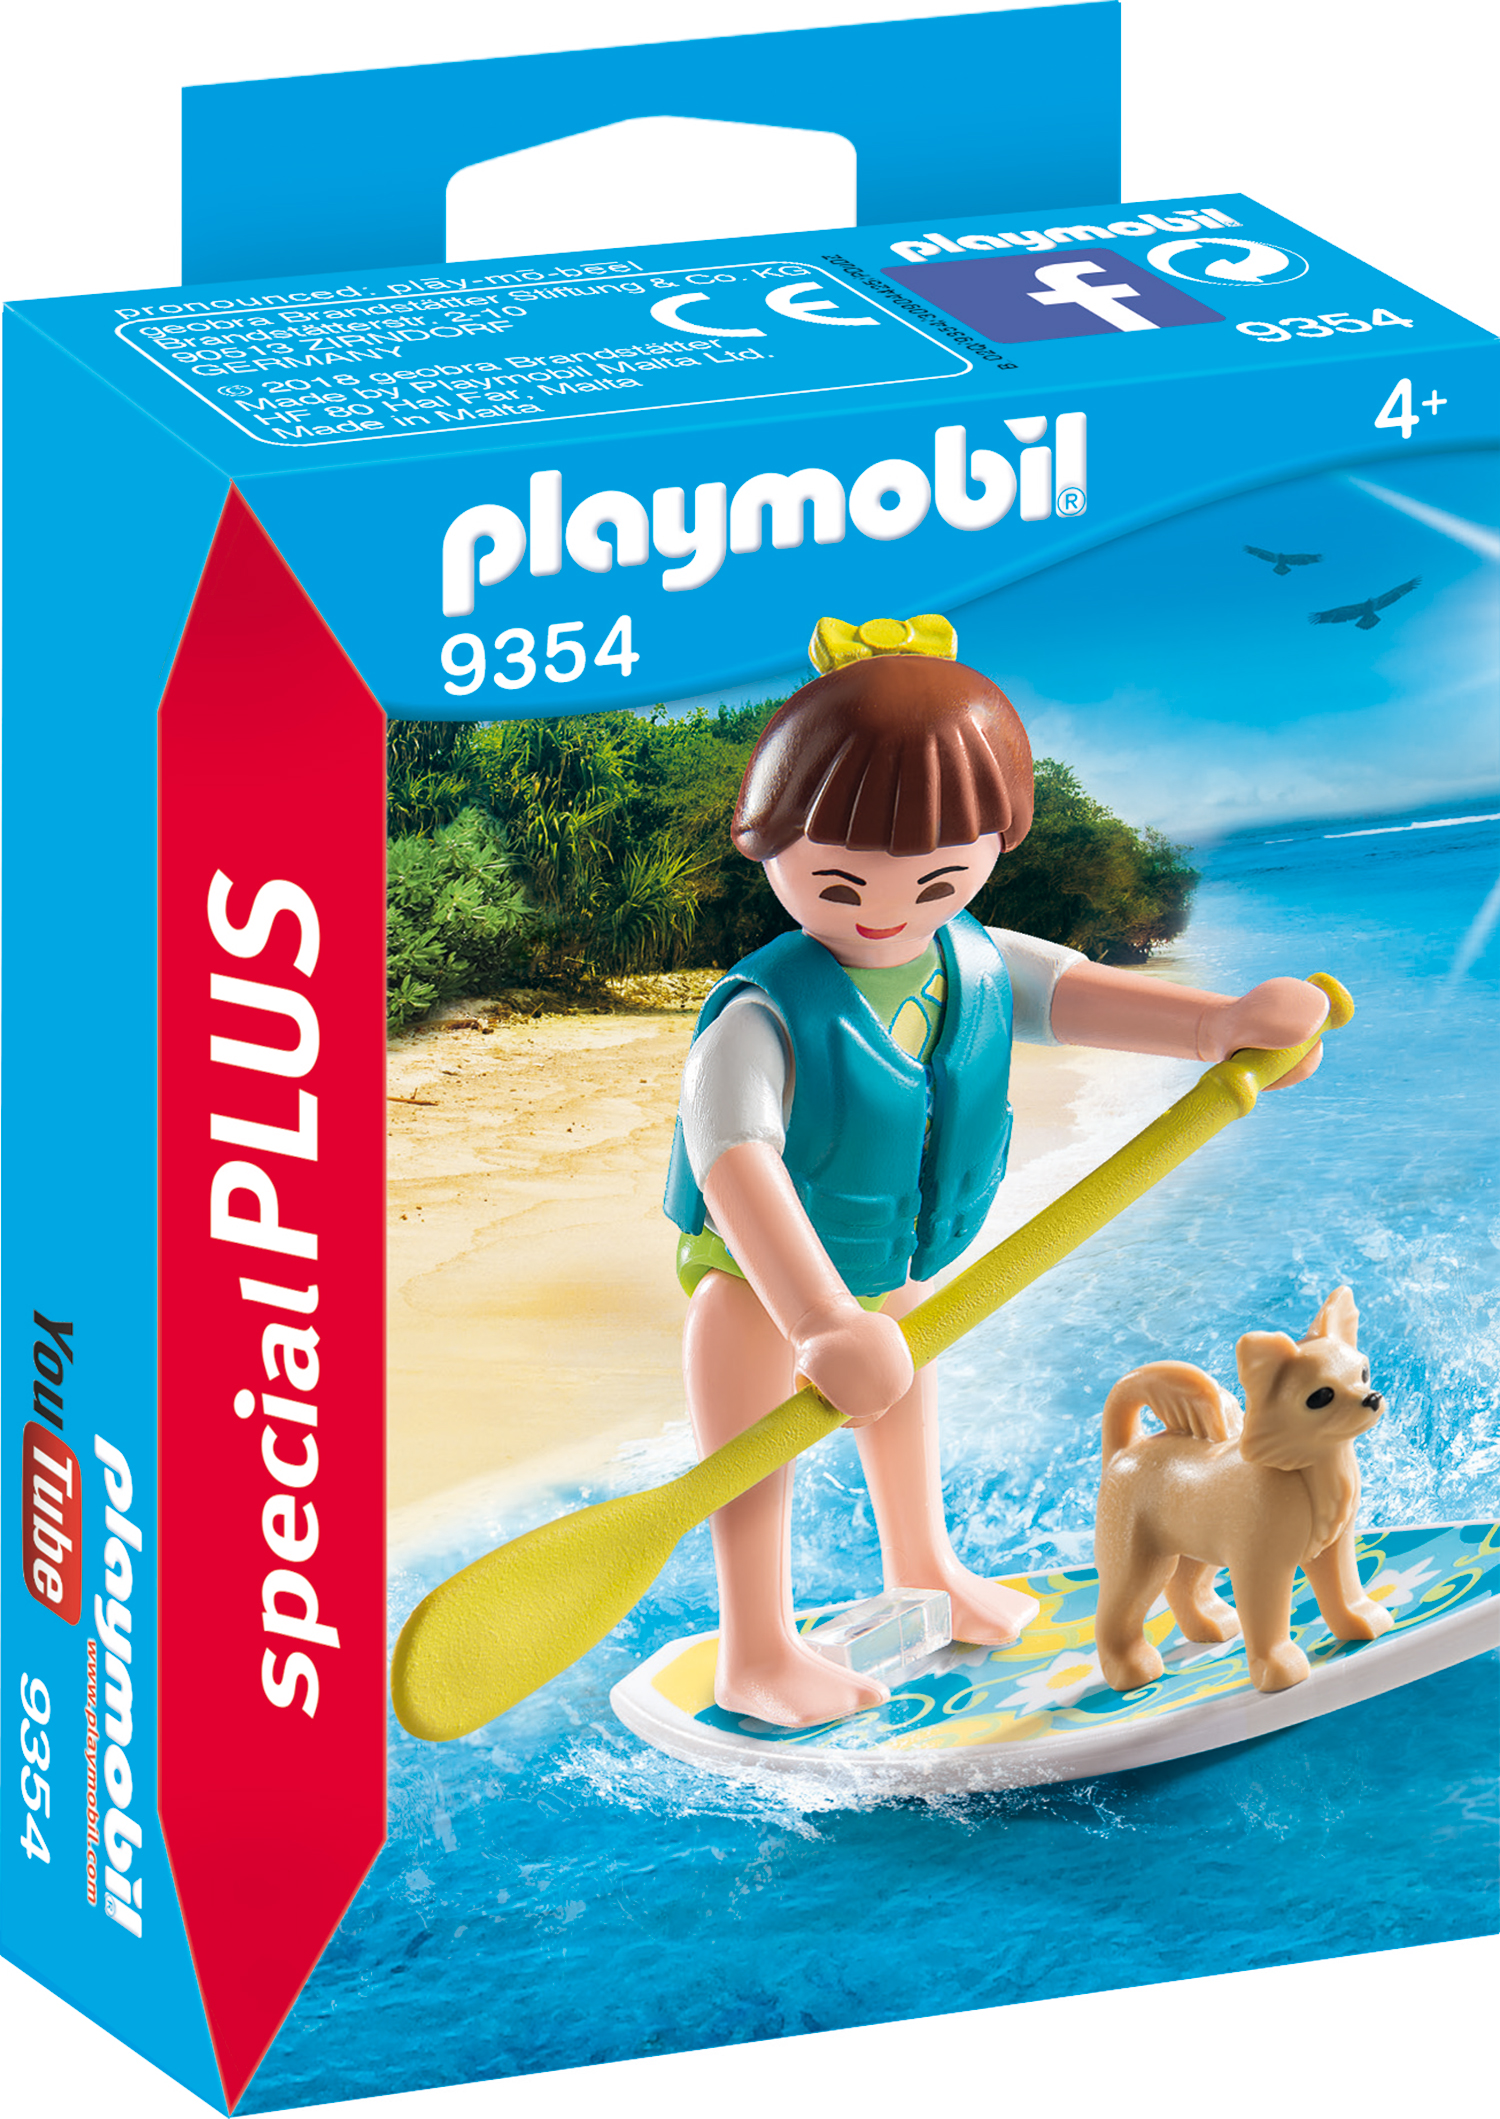 Figurina surfer si catel playmobil